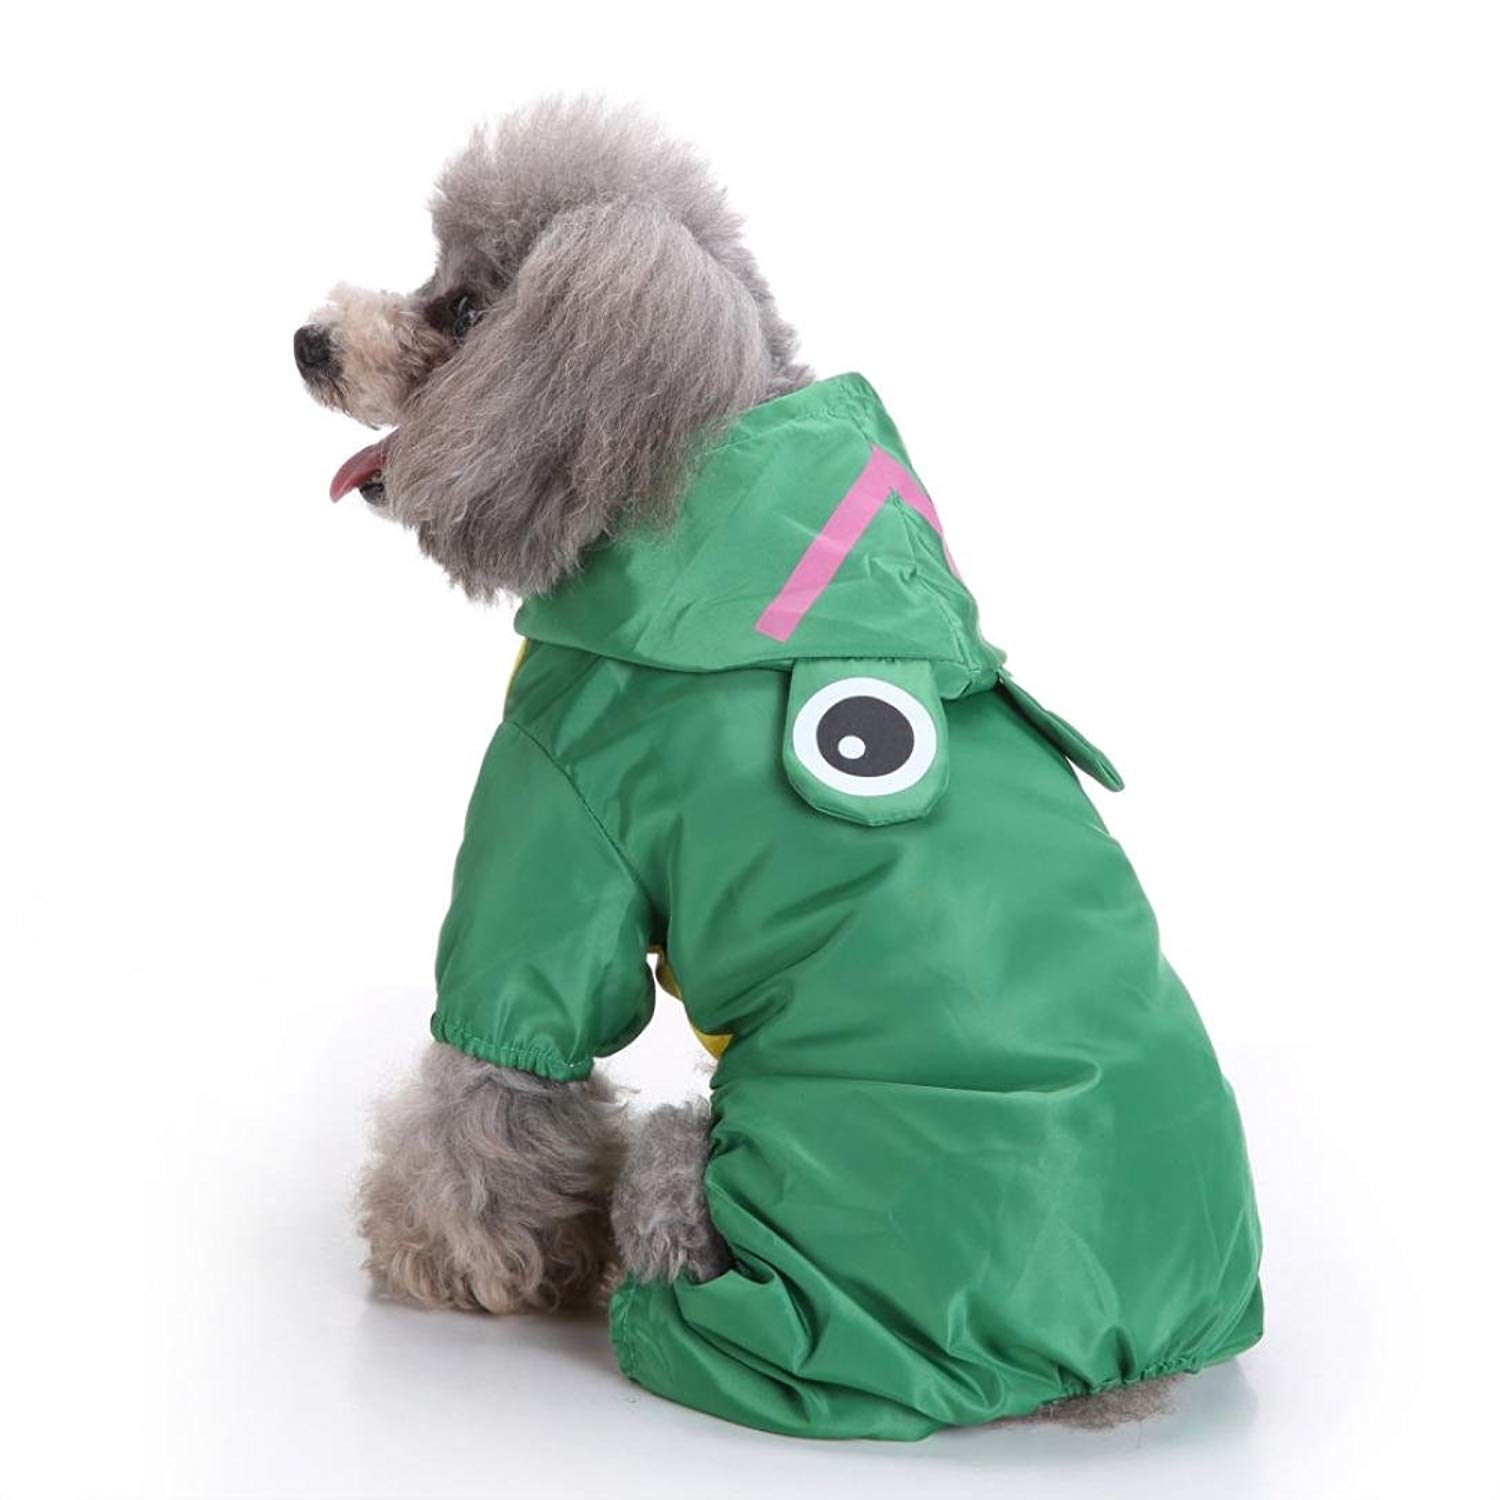 Morecome pet vest Small Dog Hooded Raincoat,Morecome Pet Waterproof Puppy Dog Cute Outdoor Raincoat